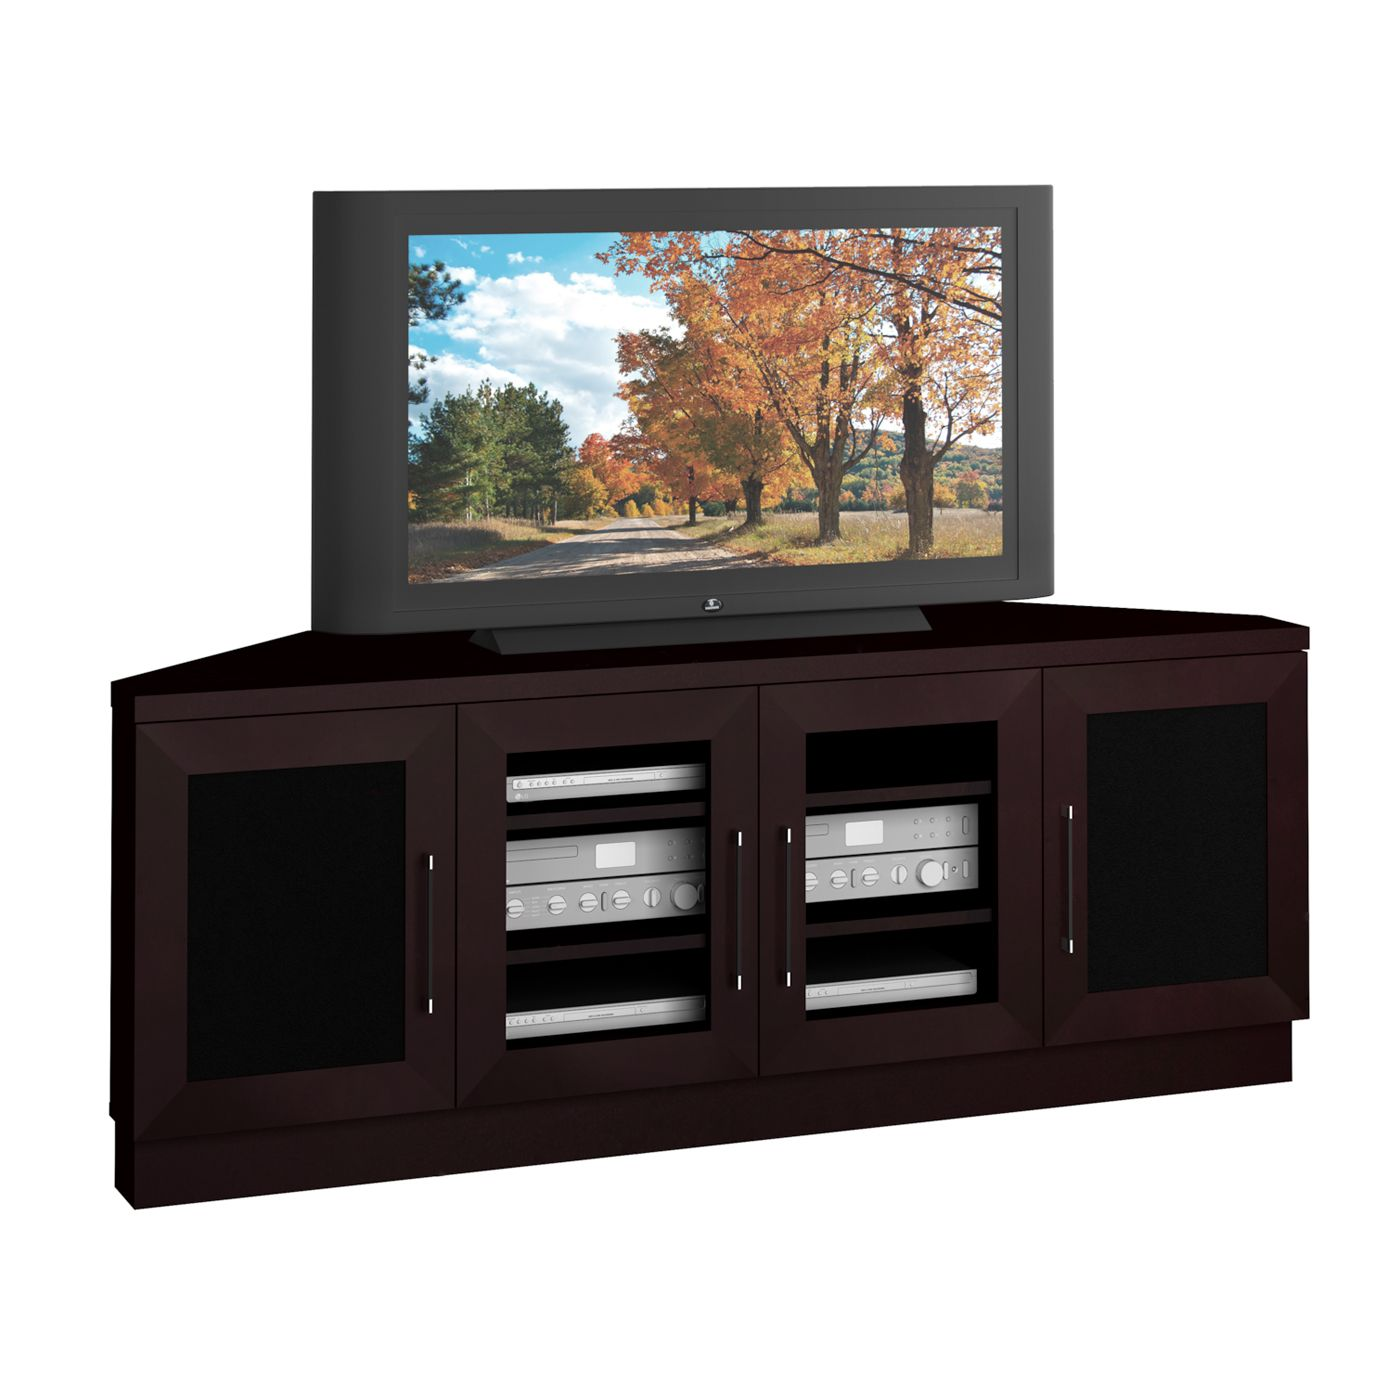 60 inch corner tv stand - 17 Best Images About Tv Stands On Pinterest Painted Cottage Art Styles And Media Furniture